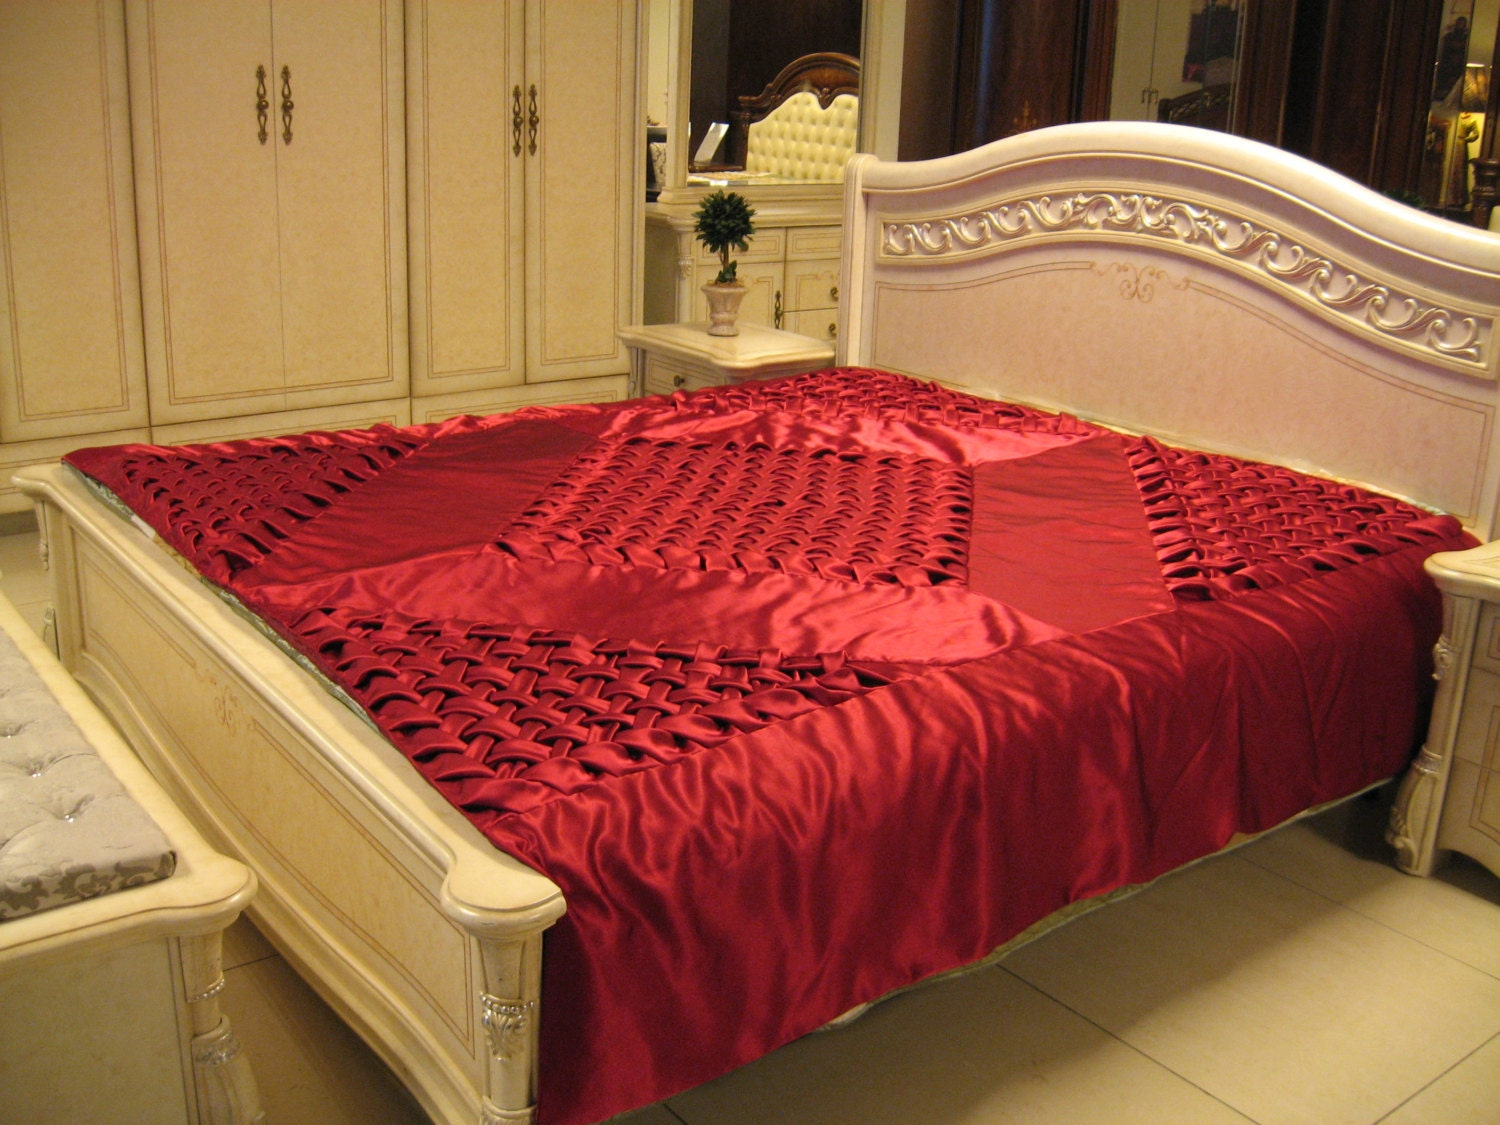 queen bedspread handmade smocked red burgundy. Black Bedroom Furniture Sets. Home Design Ideas